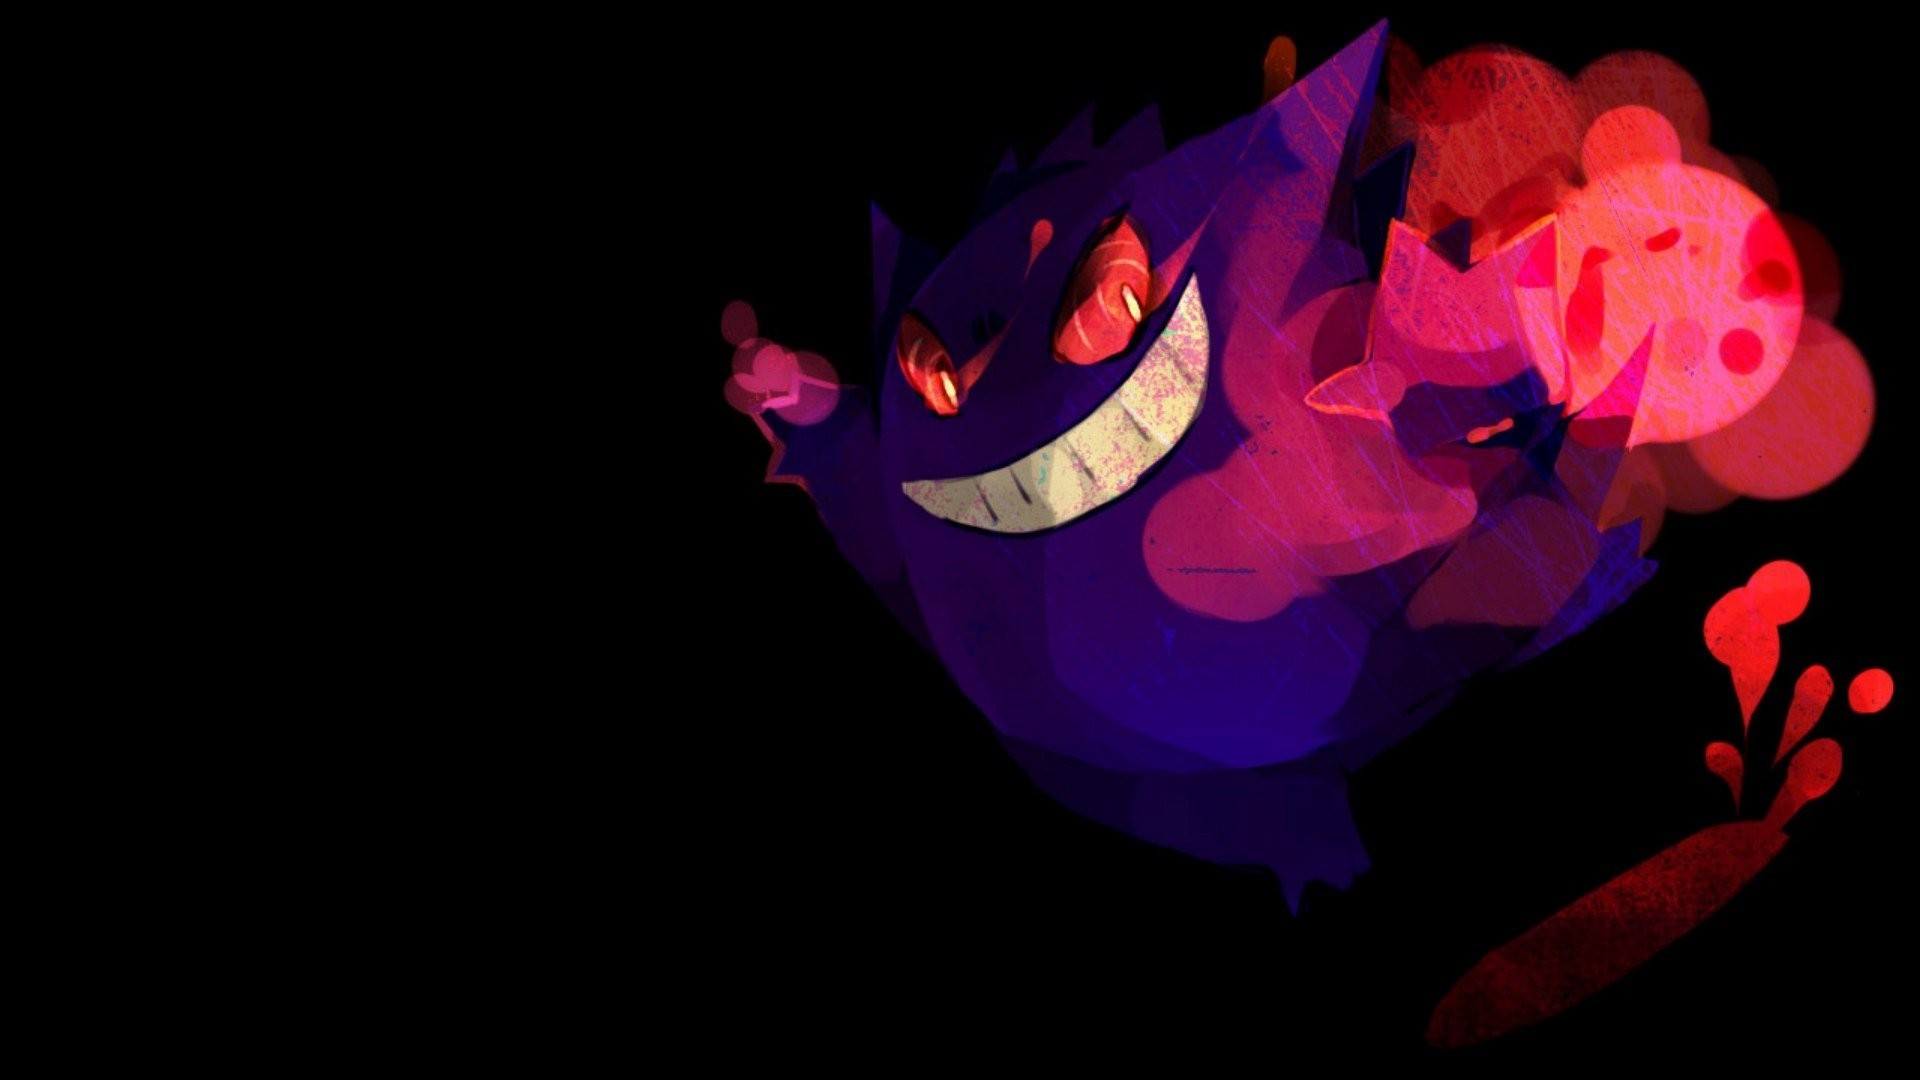 Gengar Wallpaper theme